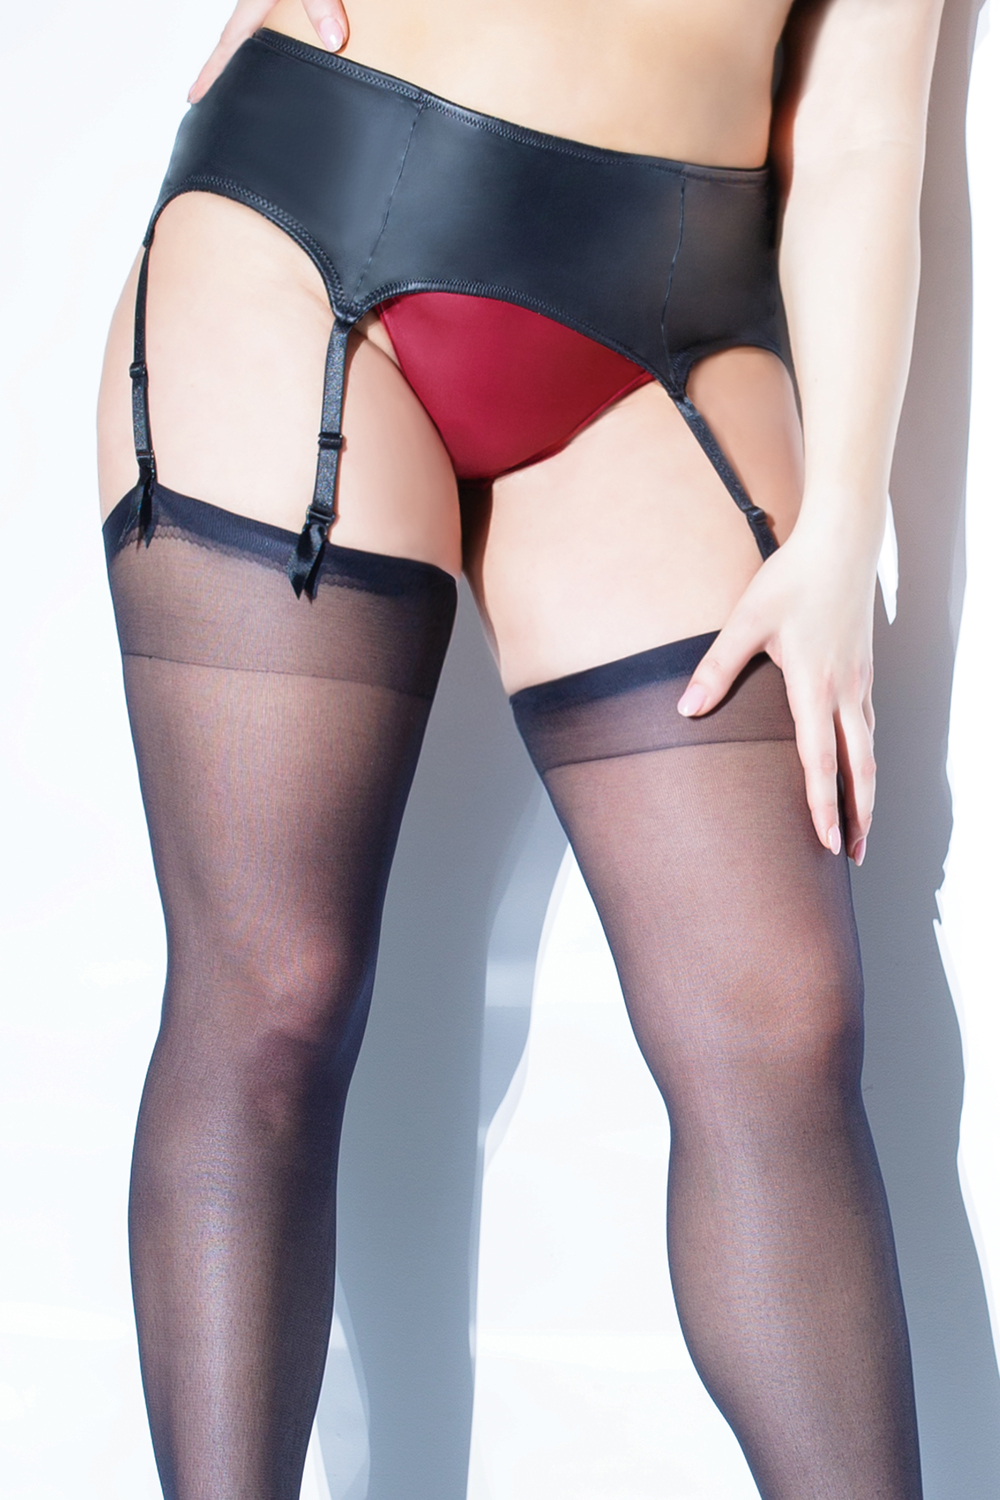 Matte wet look garter belt 9353 Edmonton